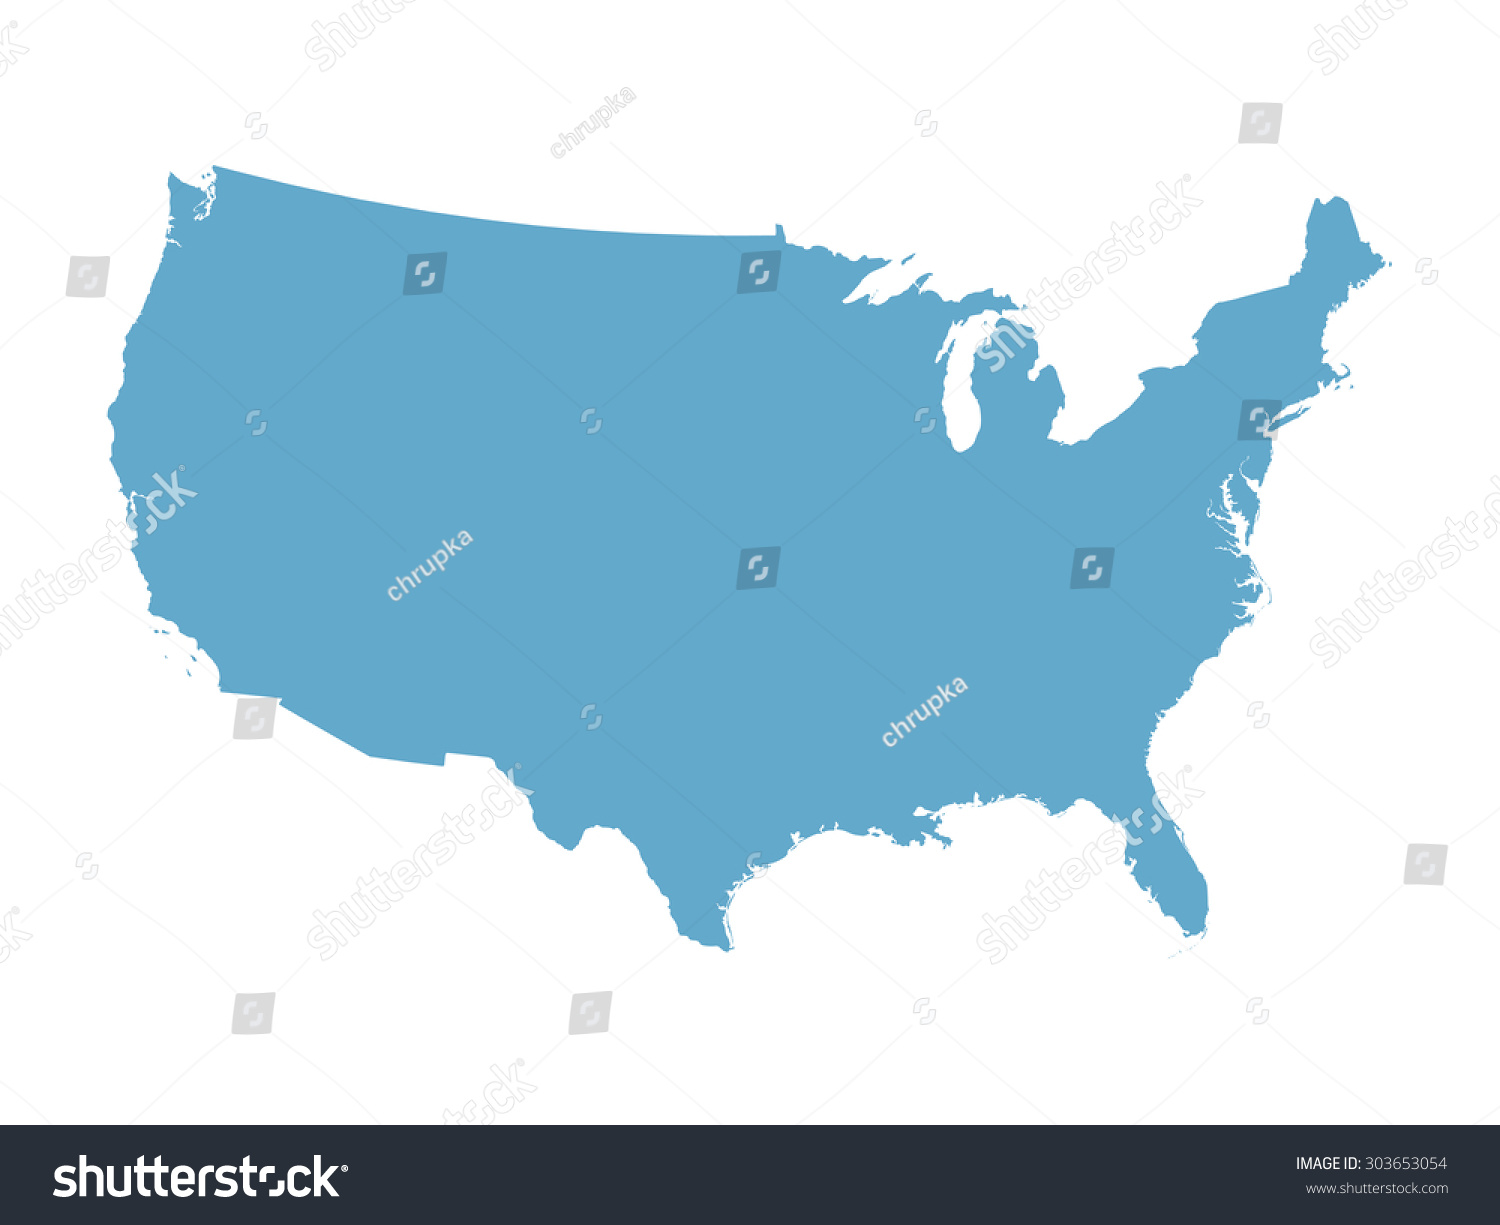 United States Regions Outline Maps Diagram Free Printable Images - Us map southeast